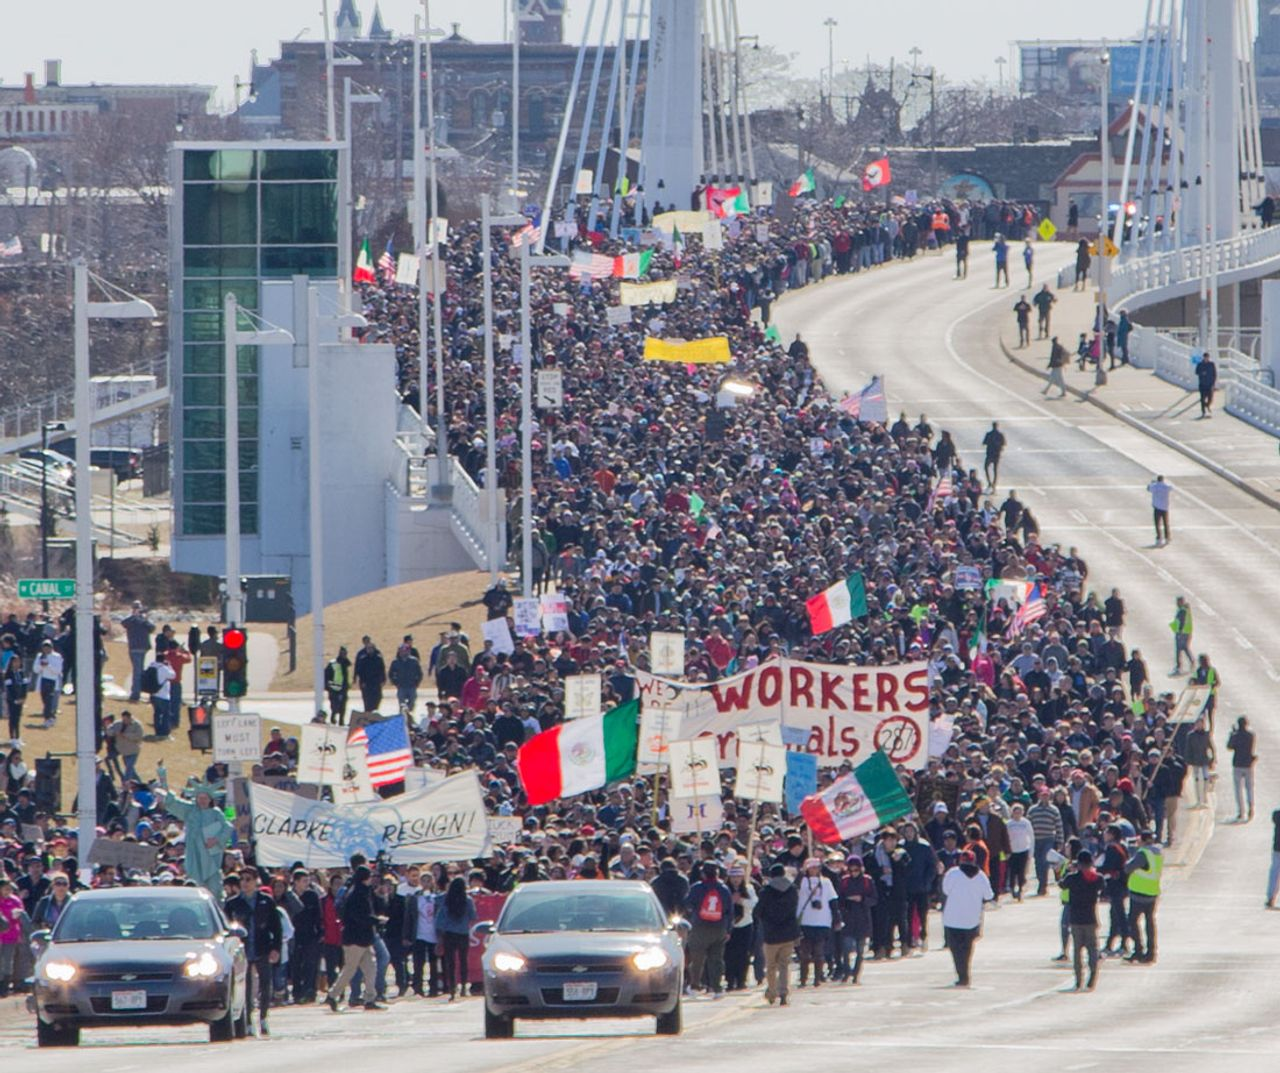 Pro-immigrant worker march in Milwaukee, USA